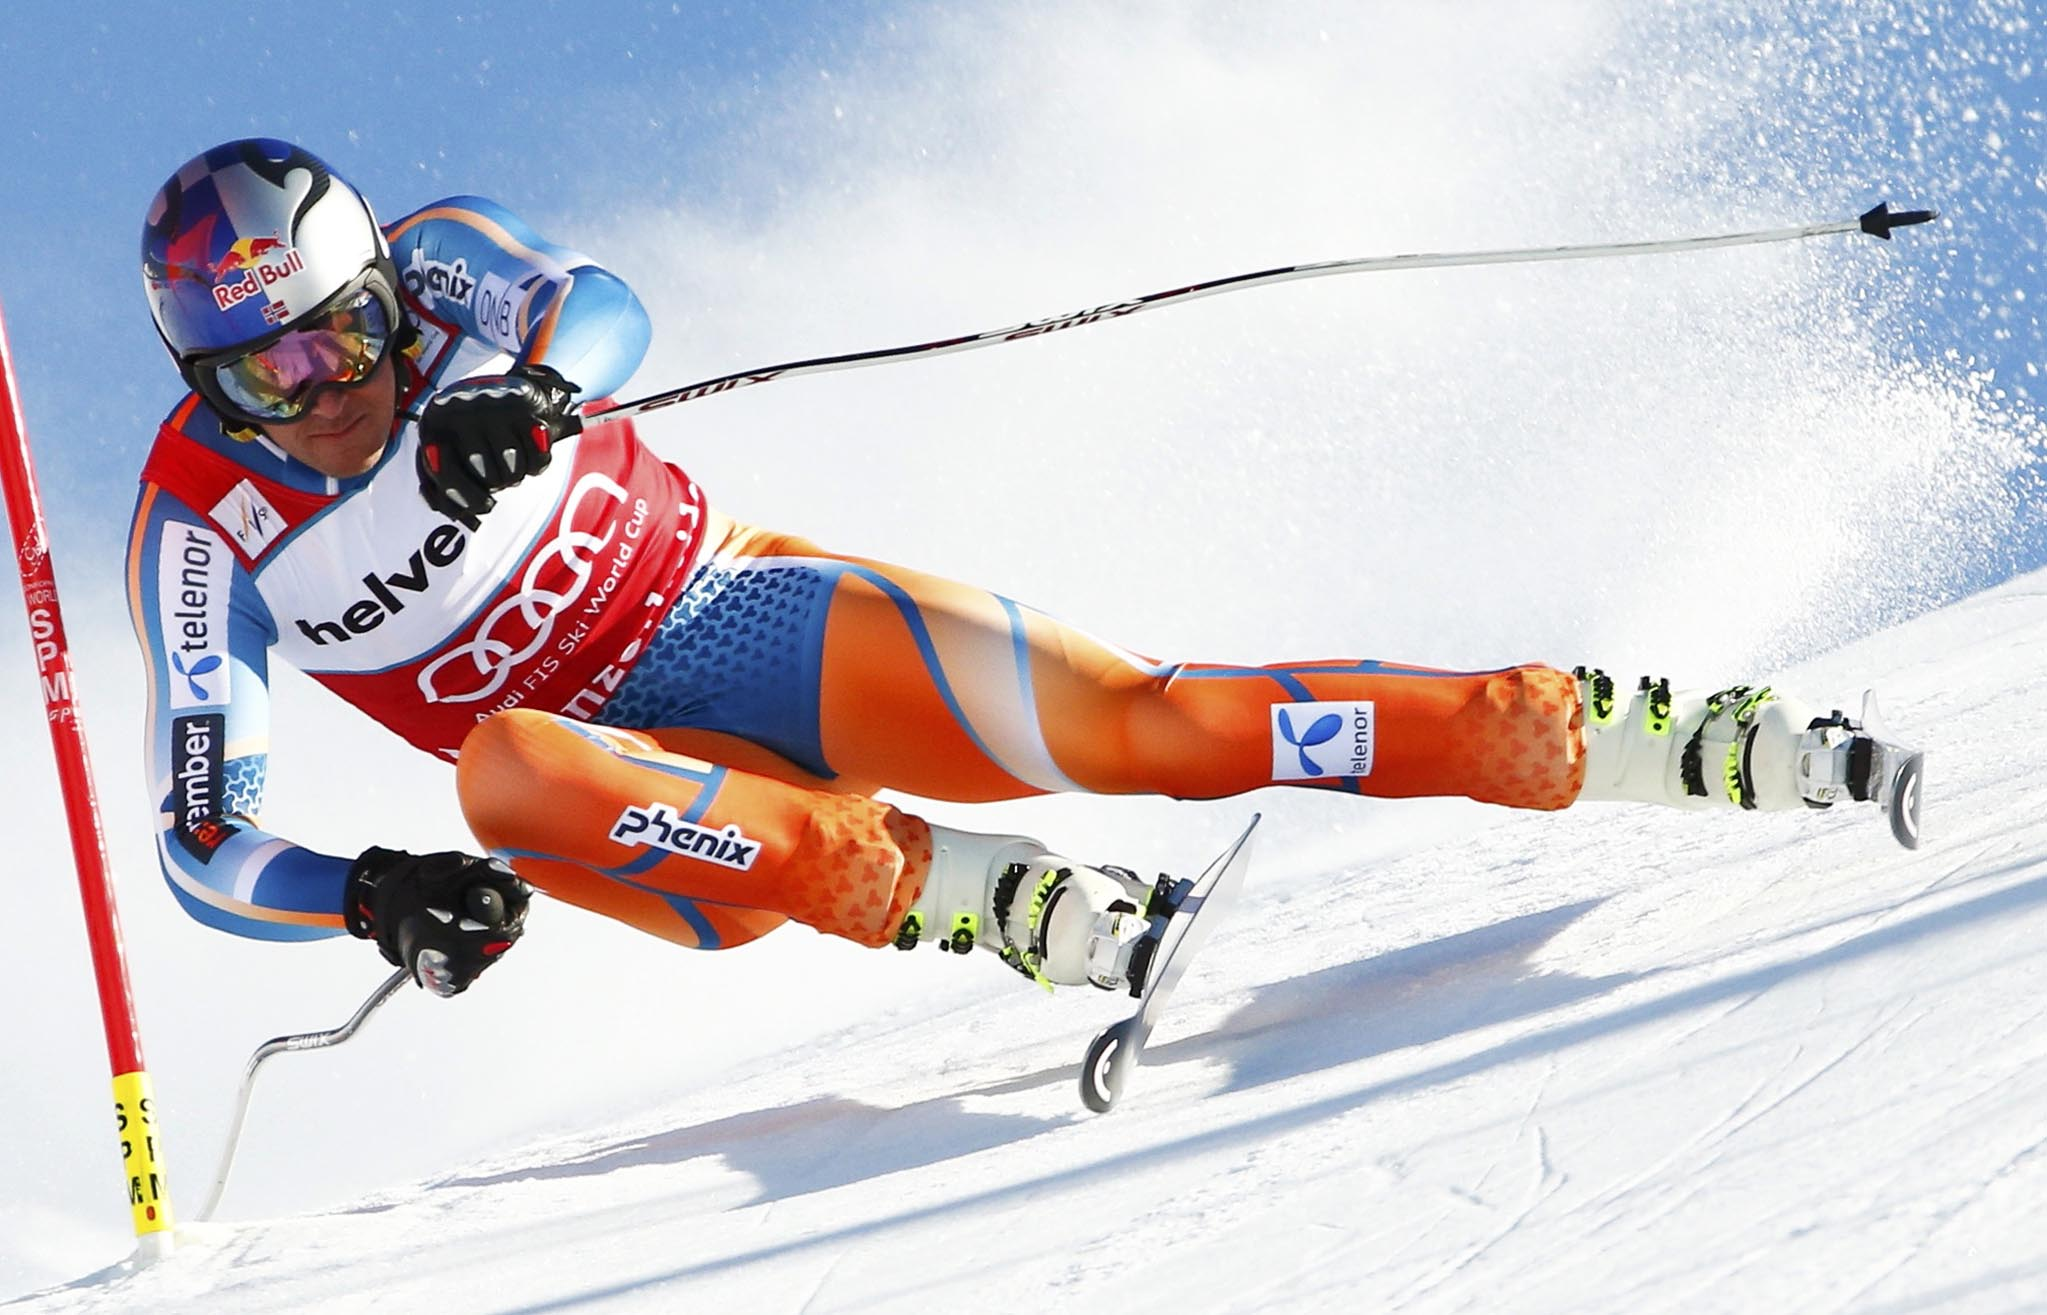 Svindal of Norway skis during the men's downhill event during the FIS Alpine Skiing World Cup finals in the Swiss ski resort of Lenzerheide